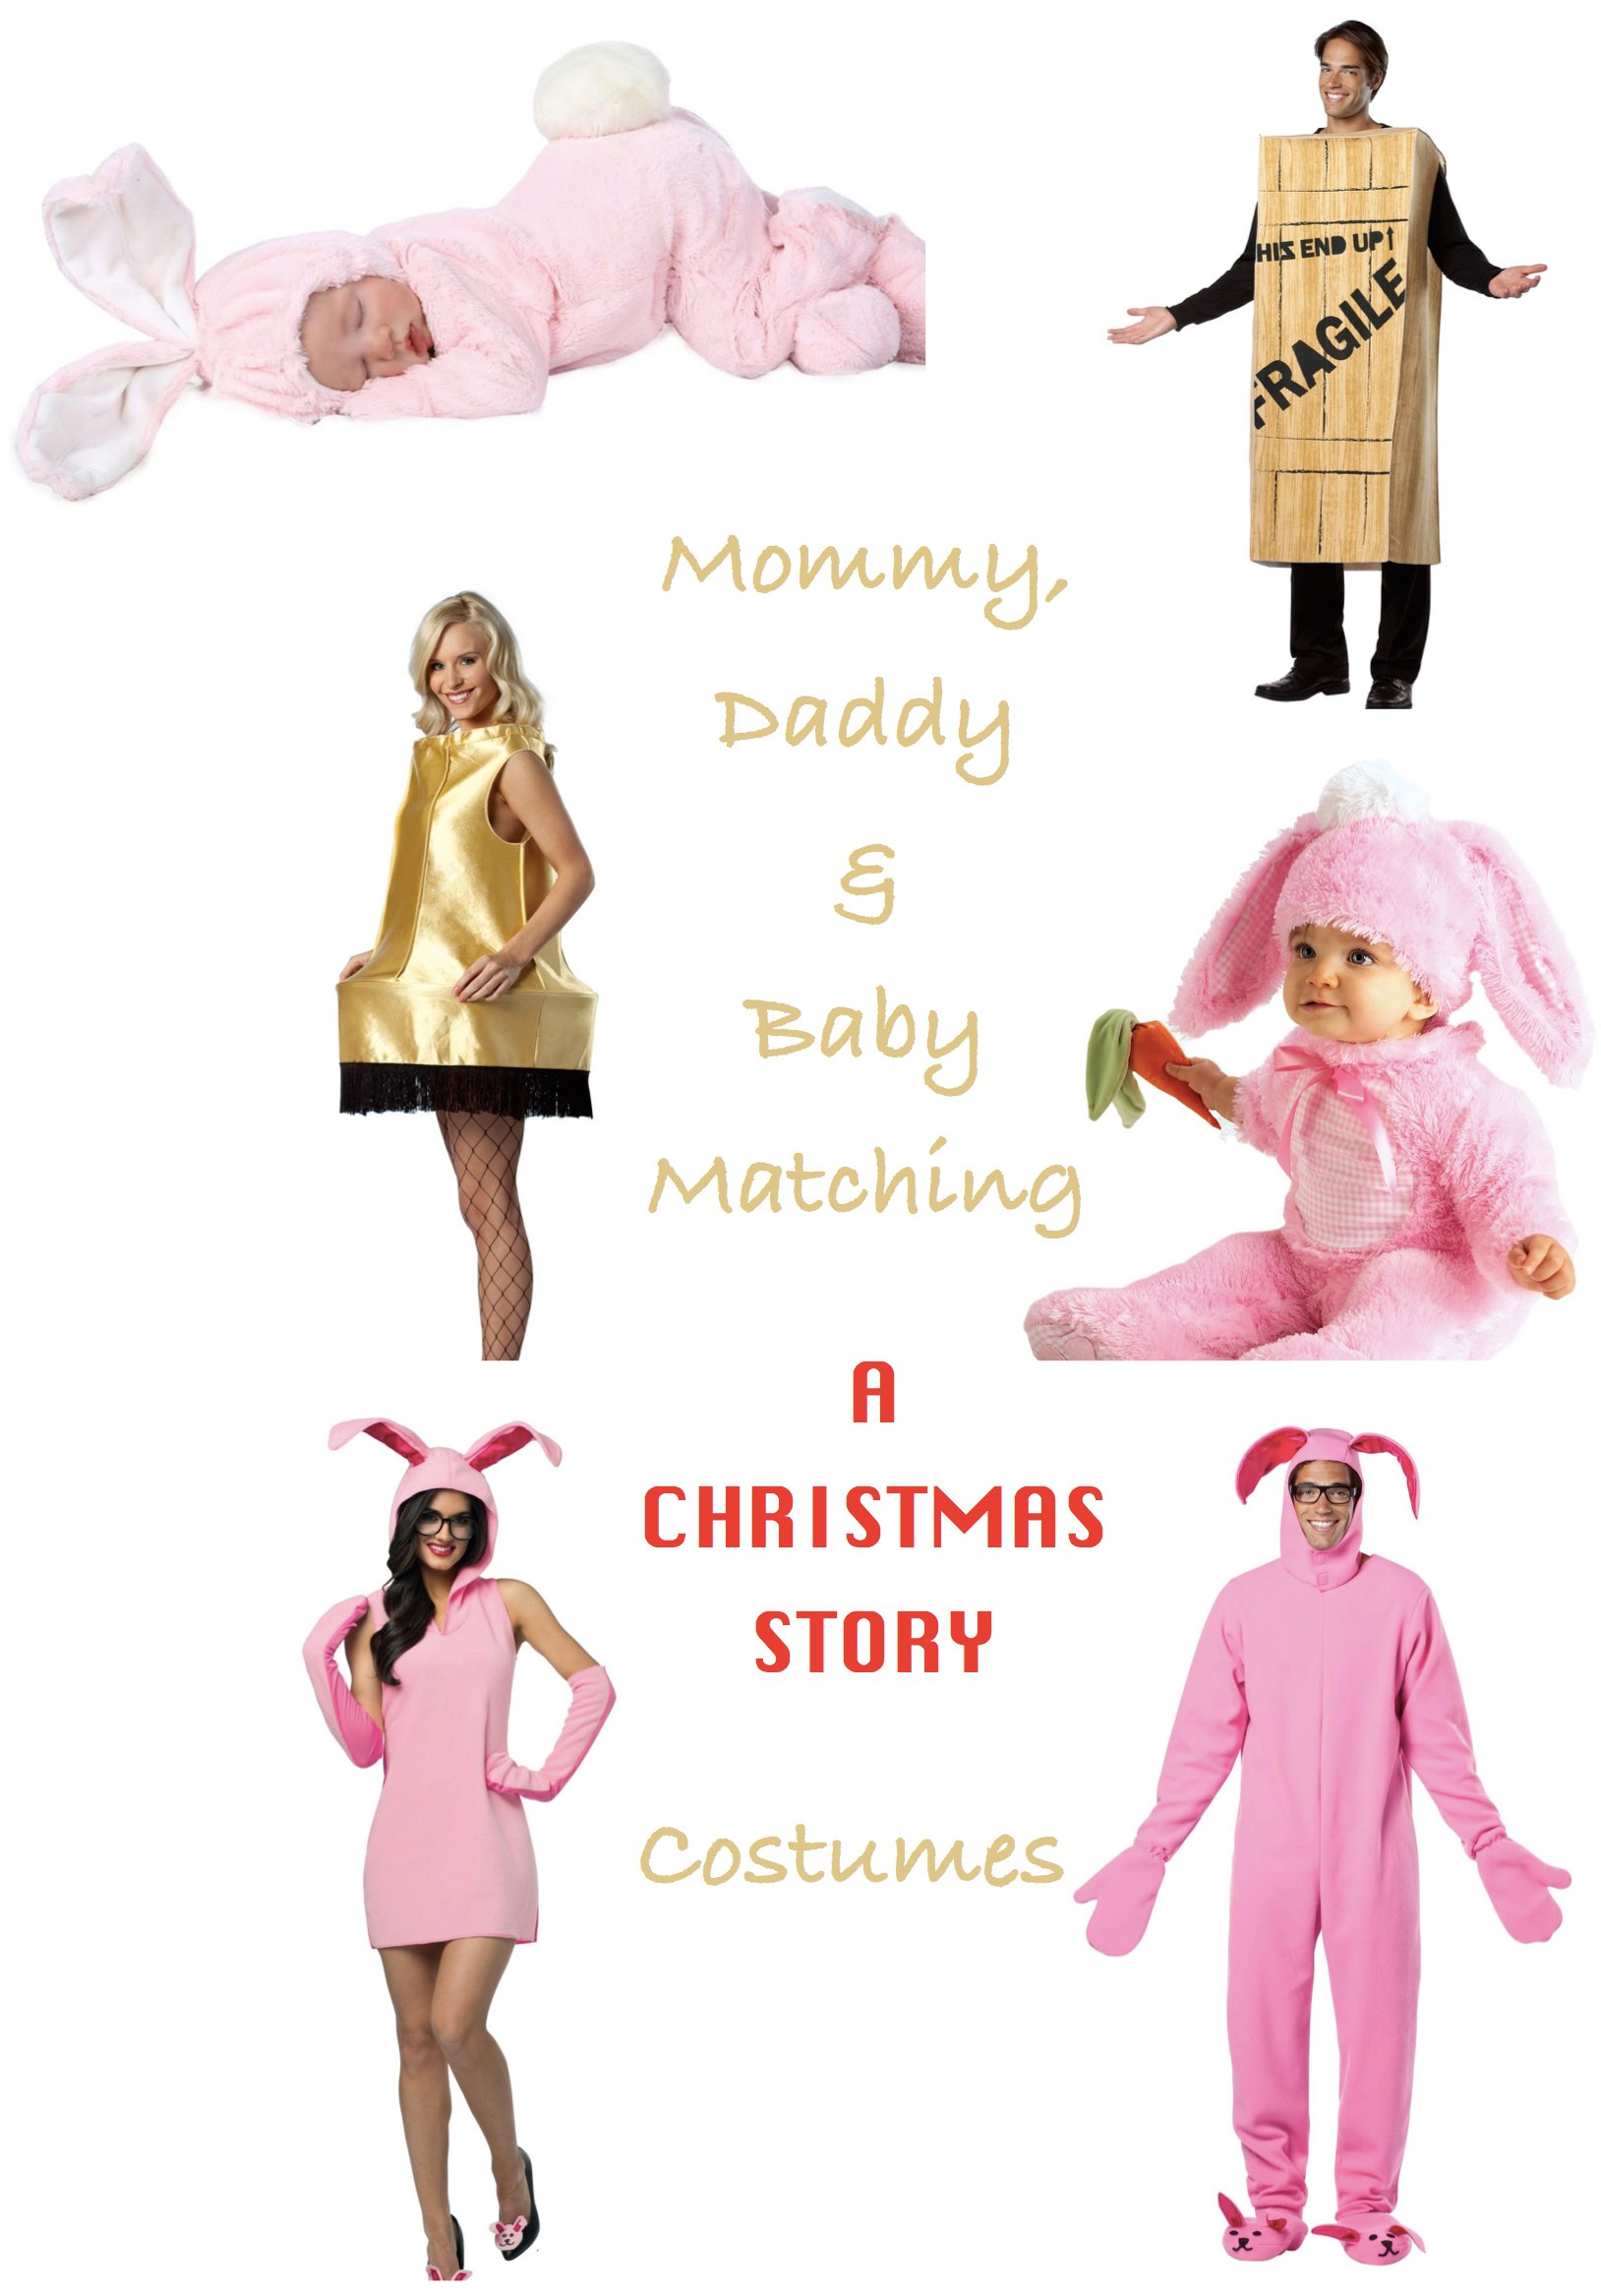 Mommy, Daddy & Baby A Christmas Story Costumes